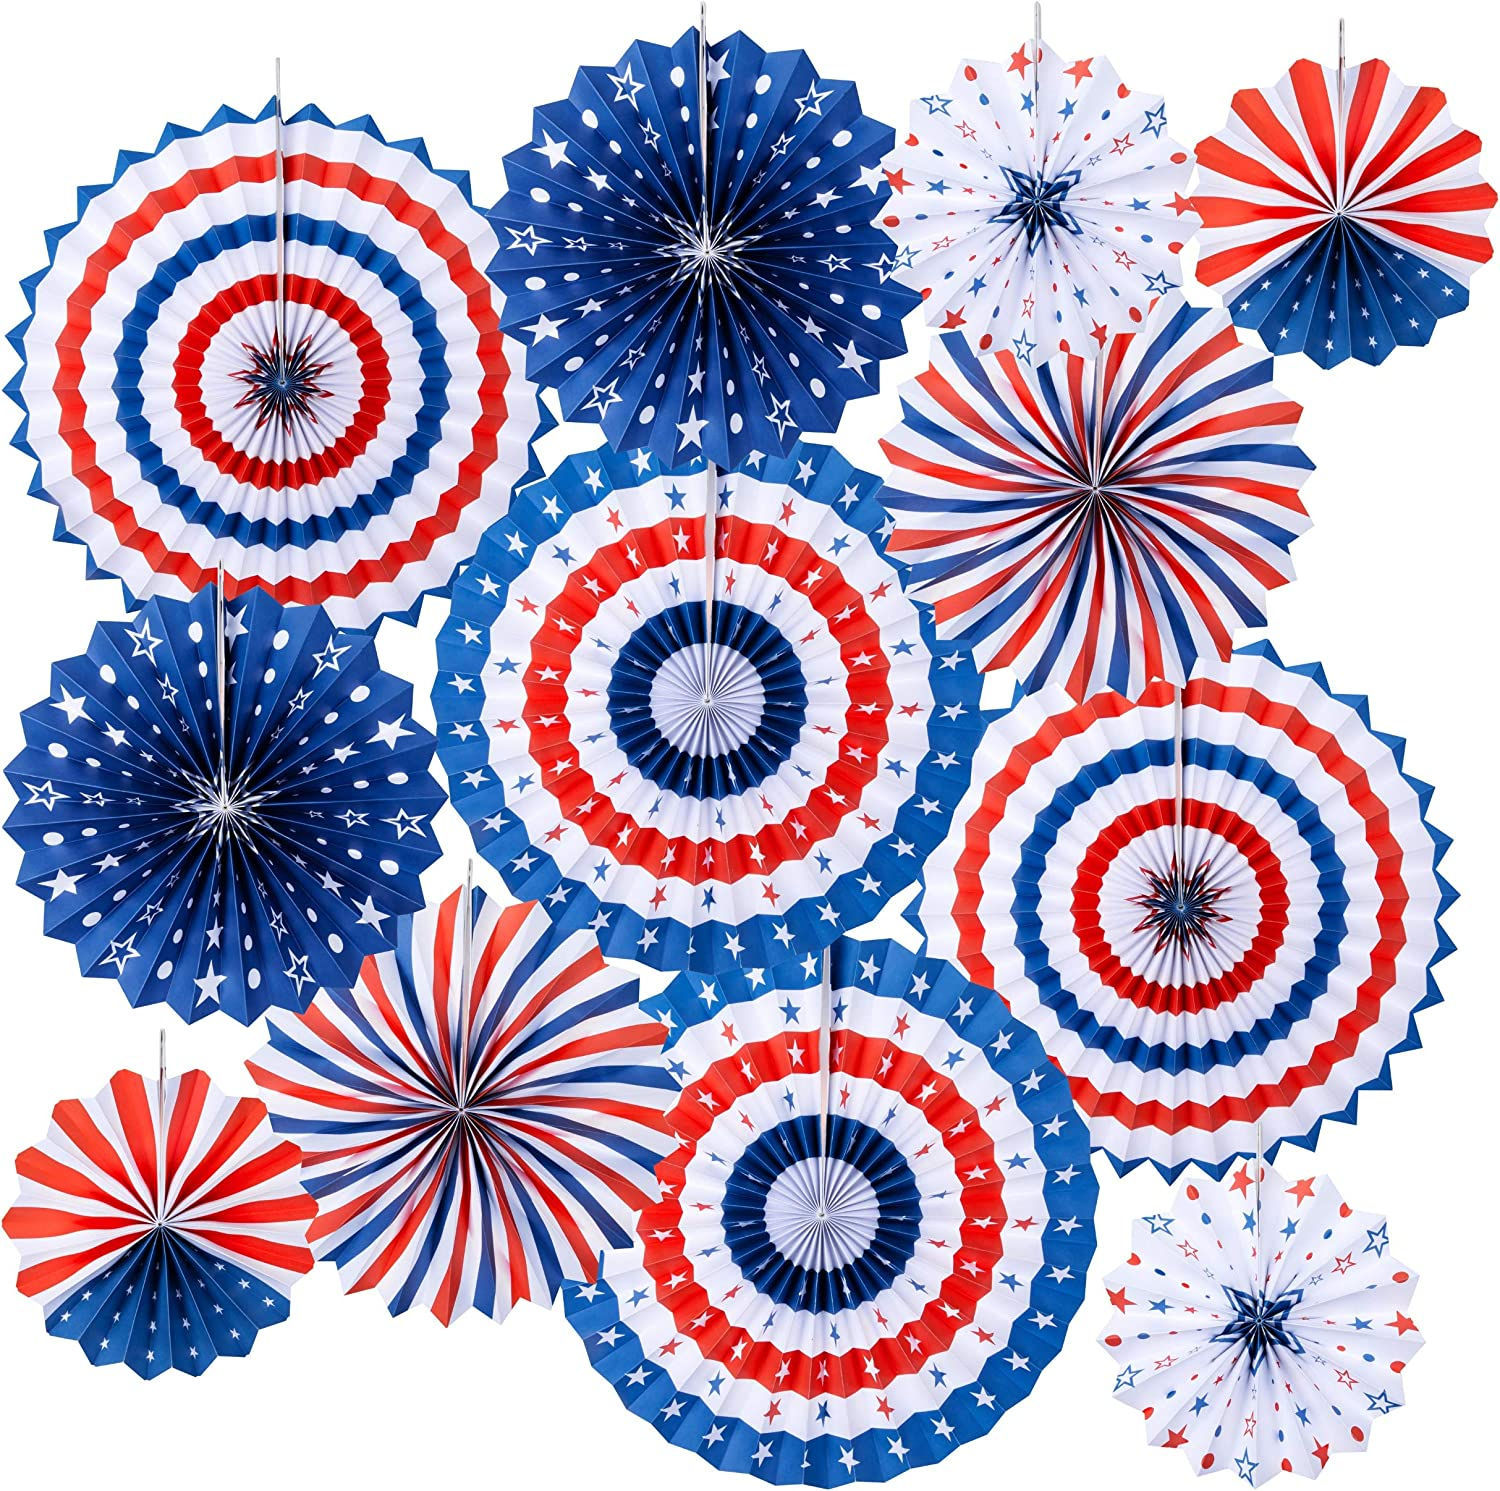 Homarden Patriotic Decorations - 4th of July Decor - American Flag Style Party Decoration - Red, White & Blue Fans for American Holidays - USA Themed Party Decor (Set of 12)